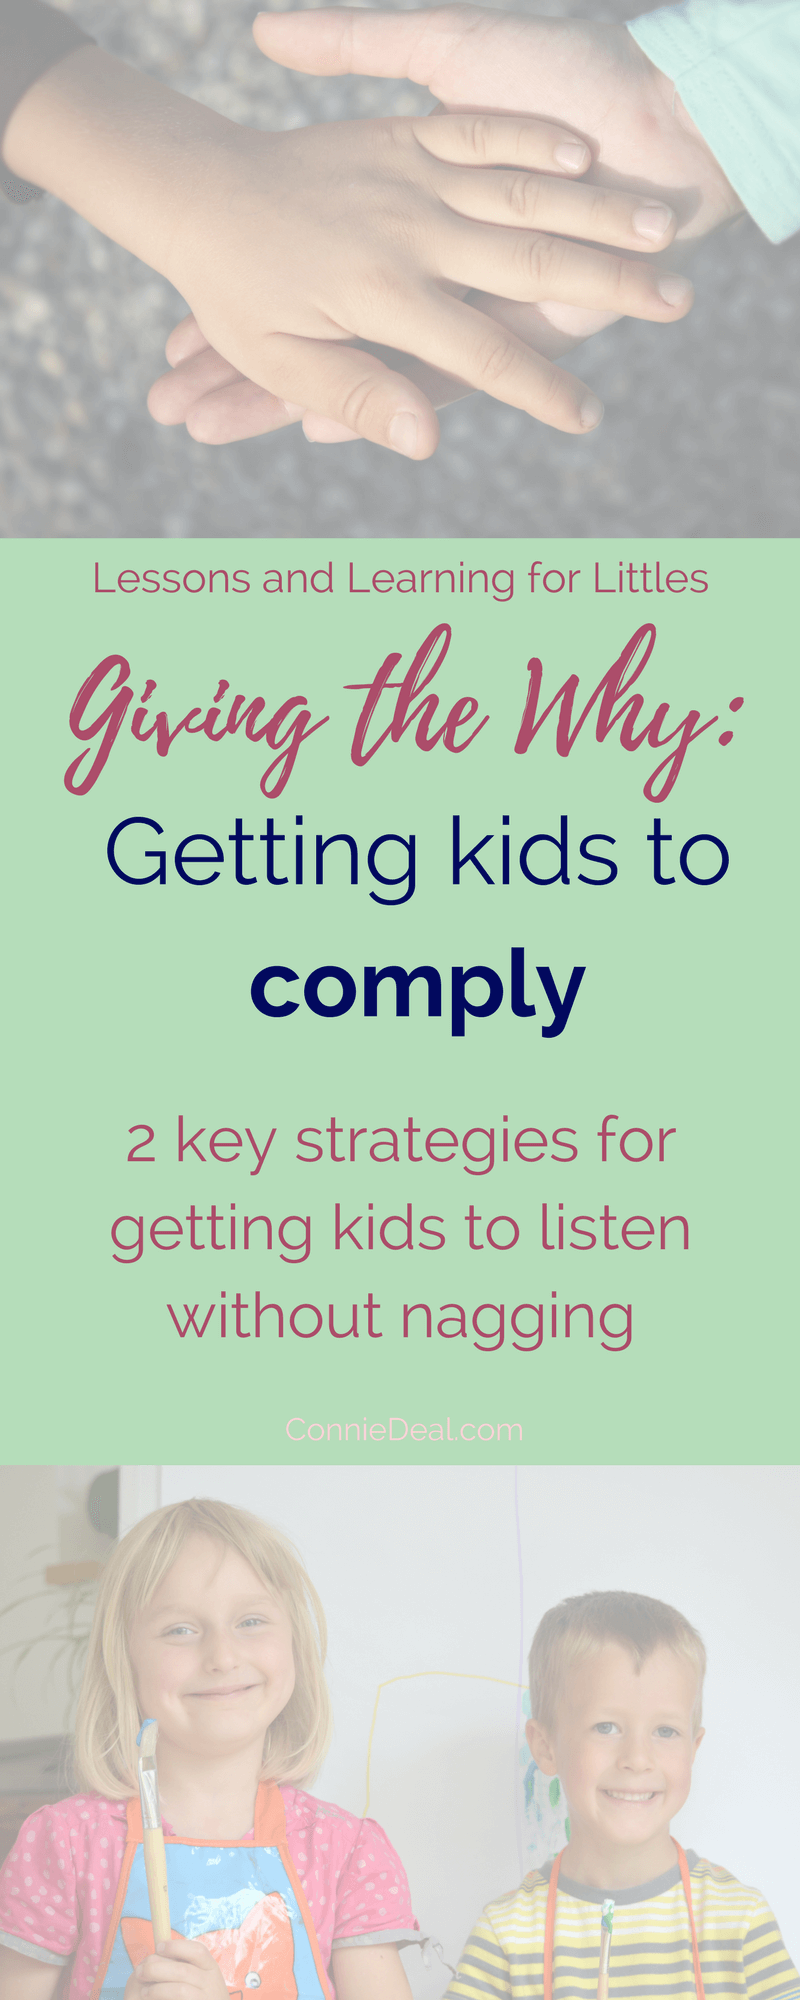 Learn two strategies to start using TODAY to help your kids listen better. Spend less time repeating and have a calmer, more relaxed home when you implement these two strategies from Lessons and Learning for Littles. #toddlerroutine #toddlers #motherhood